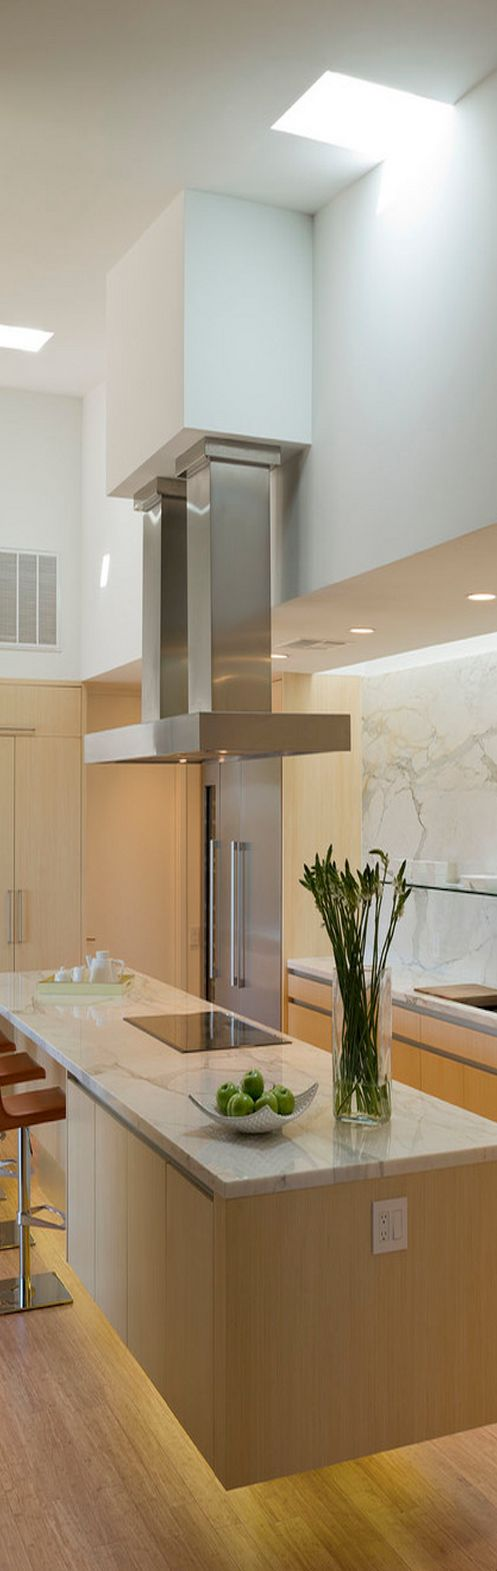 Great marble backsplash...forget about the marble backsplash, look at the whole freakin thing